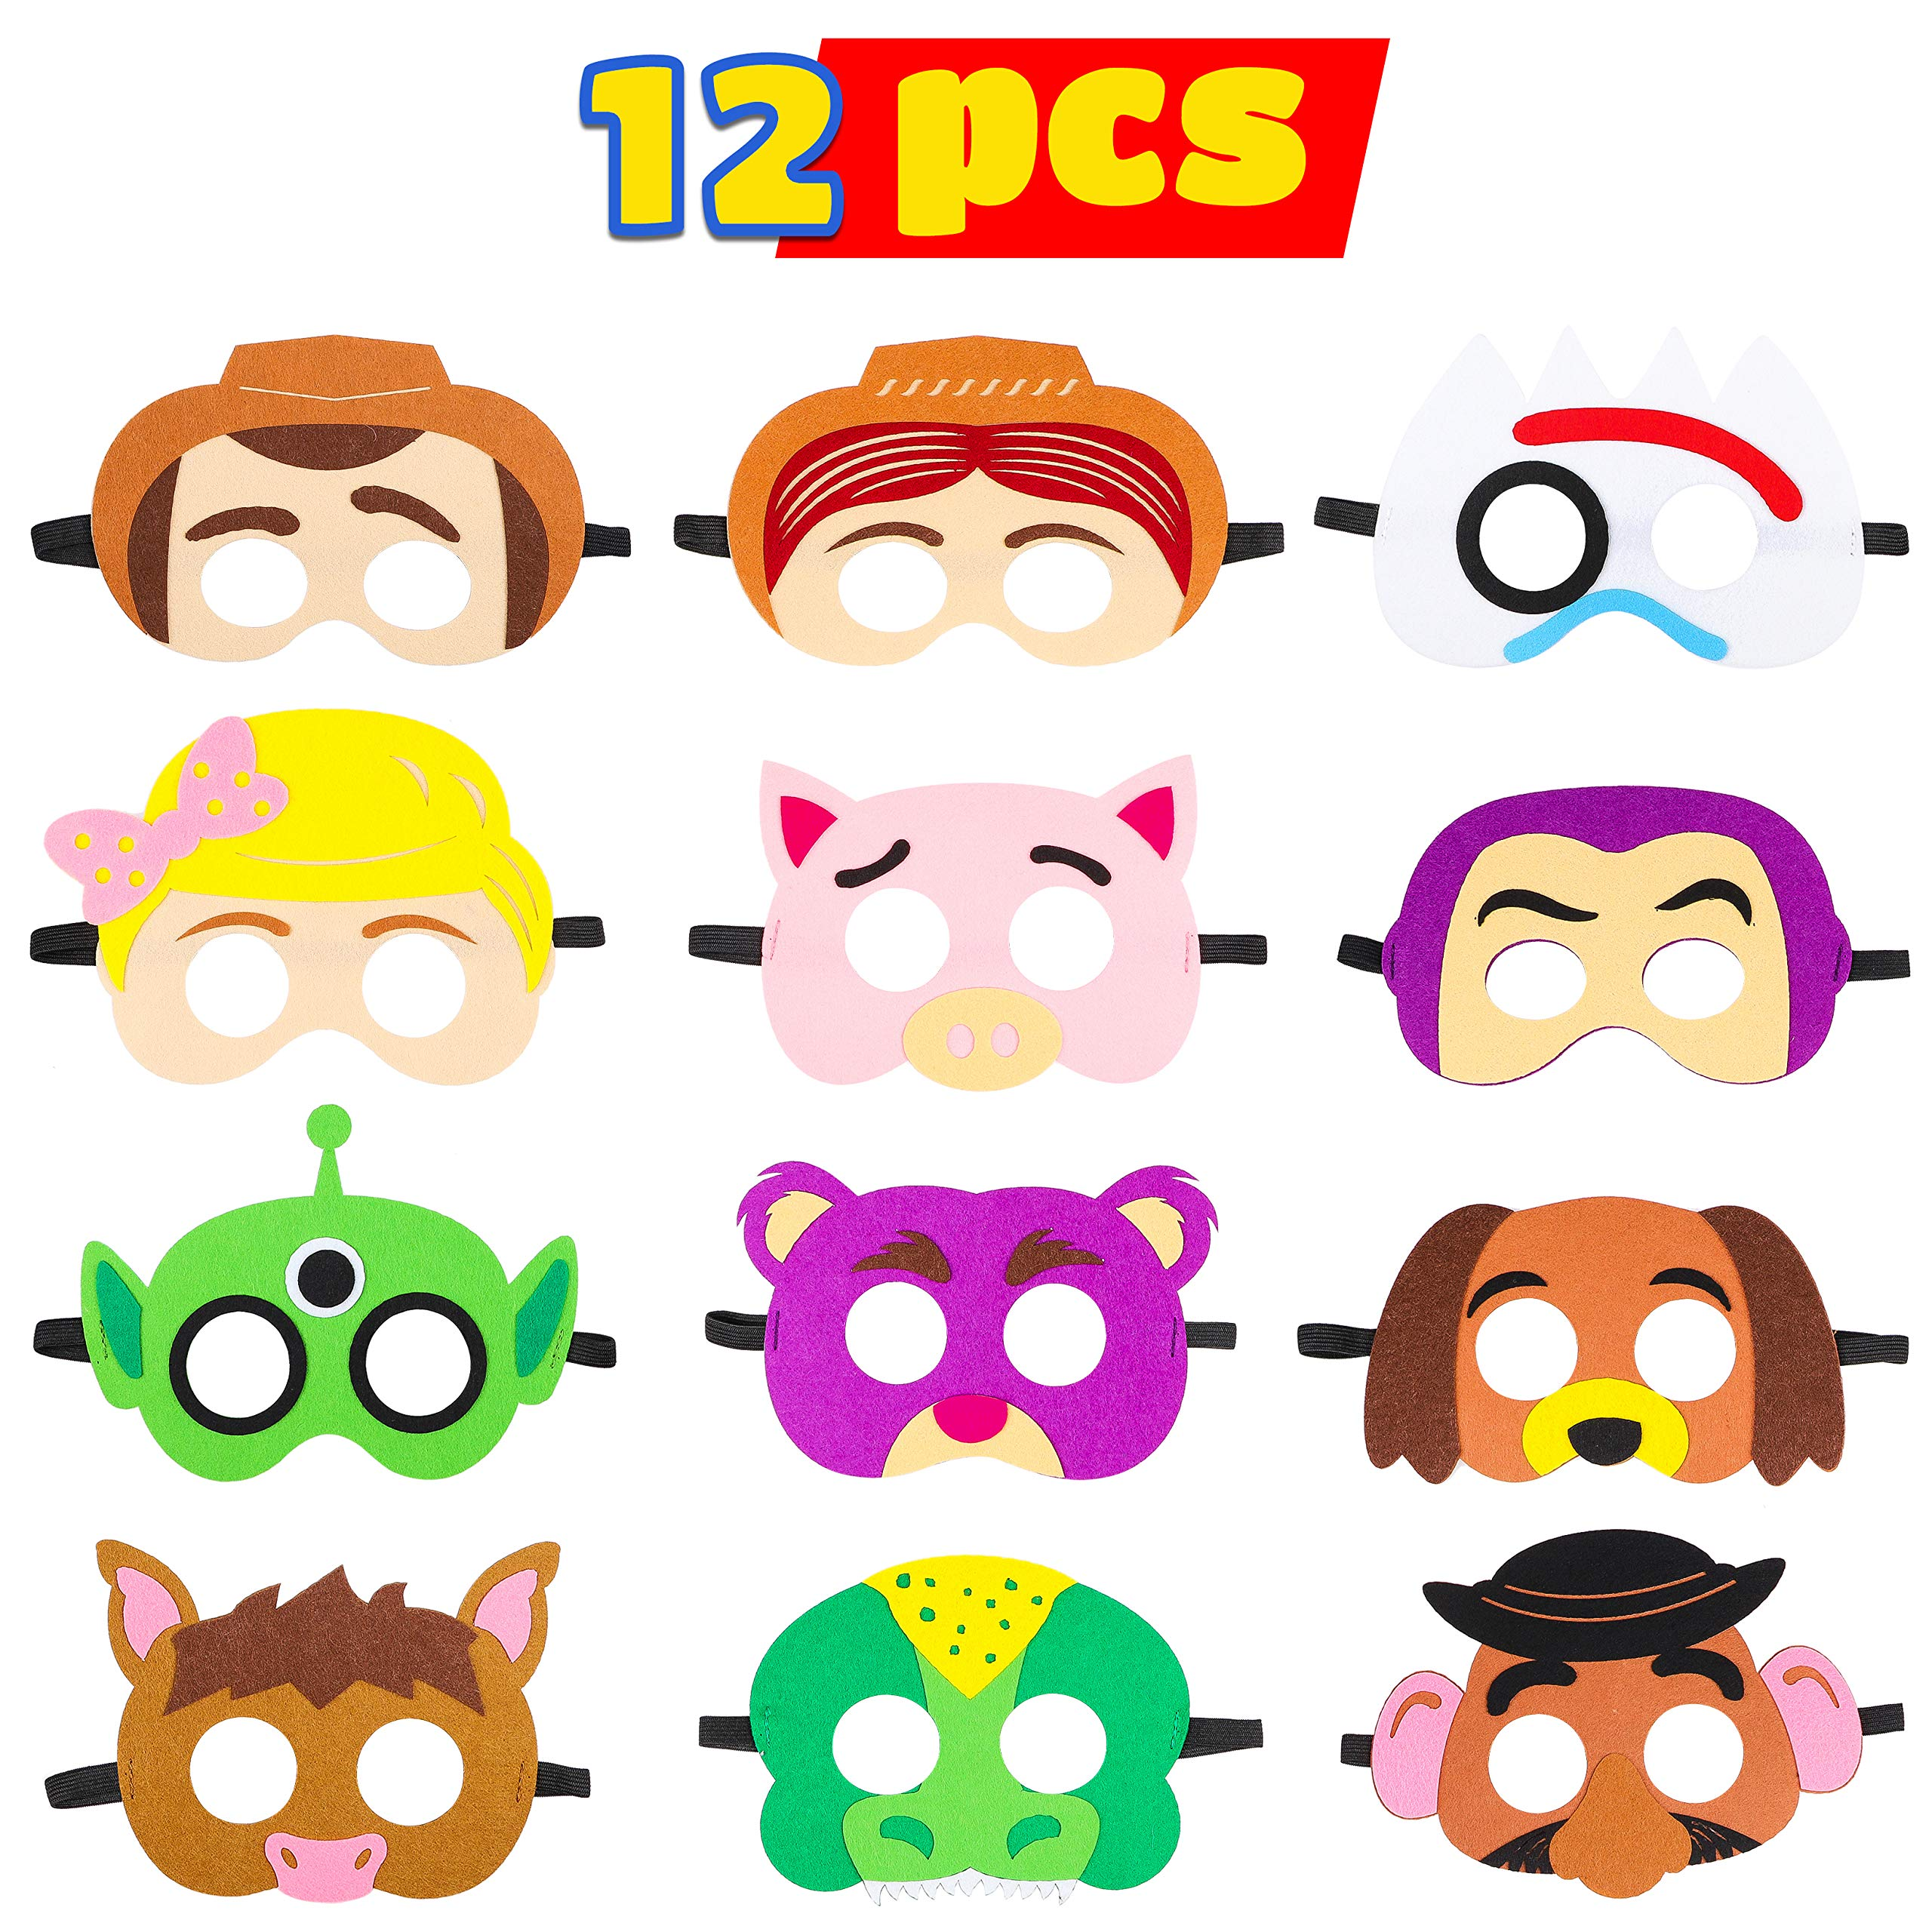 MALLMALL6 Toy 4th Masks Birthday Party Supplies Toys 4th Adventure Party Favors Dress Up Costume Mask Include Woody Buzz Lightyear Bo Peep Bullseye Forky Slinky Dog Jessie Mr Potato Head Rex for Kids